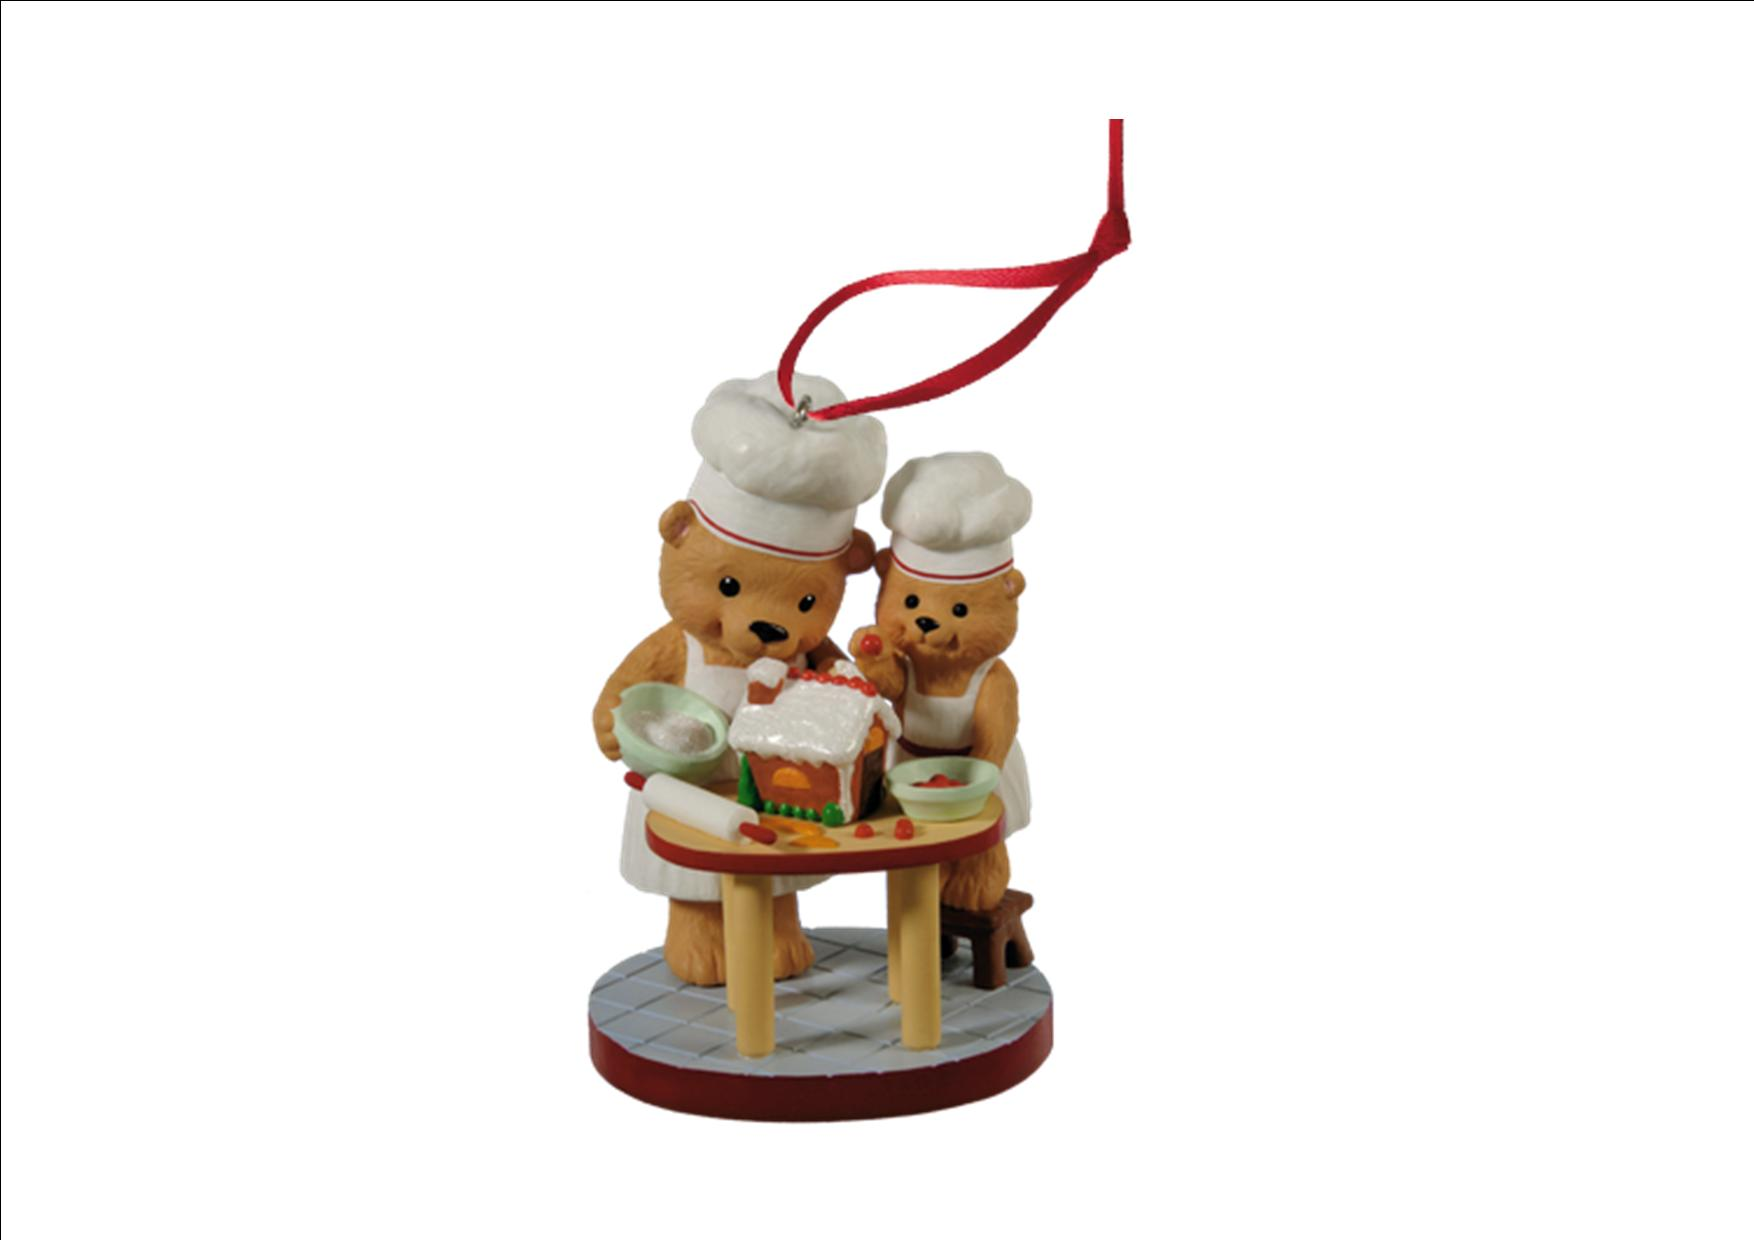 Hallmark 2013 Busy Bakers (KOC) Keepsake Ornament Club QXC5058